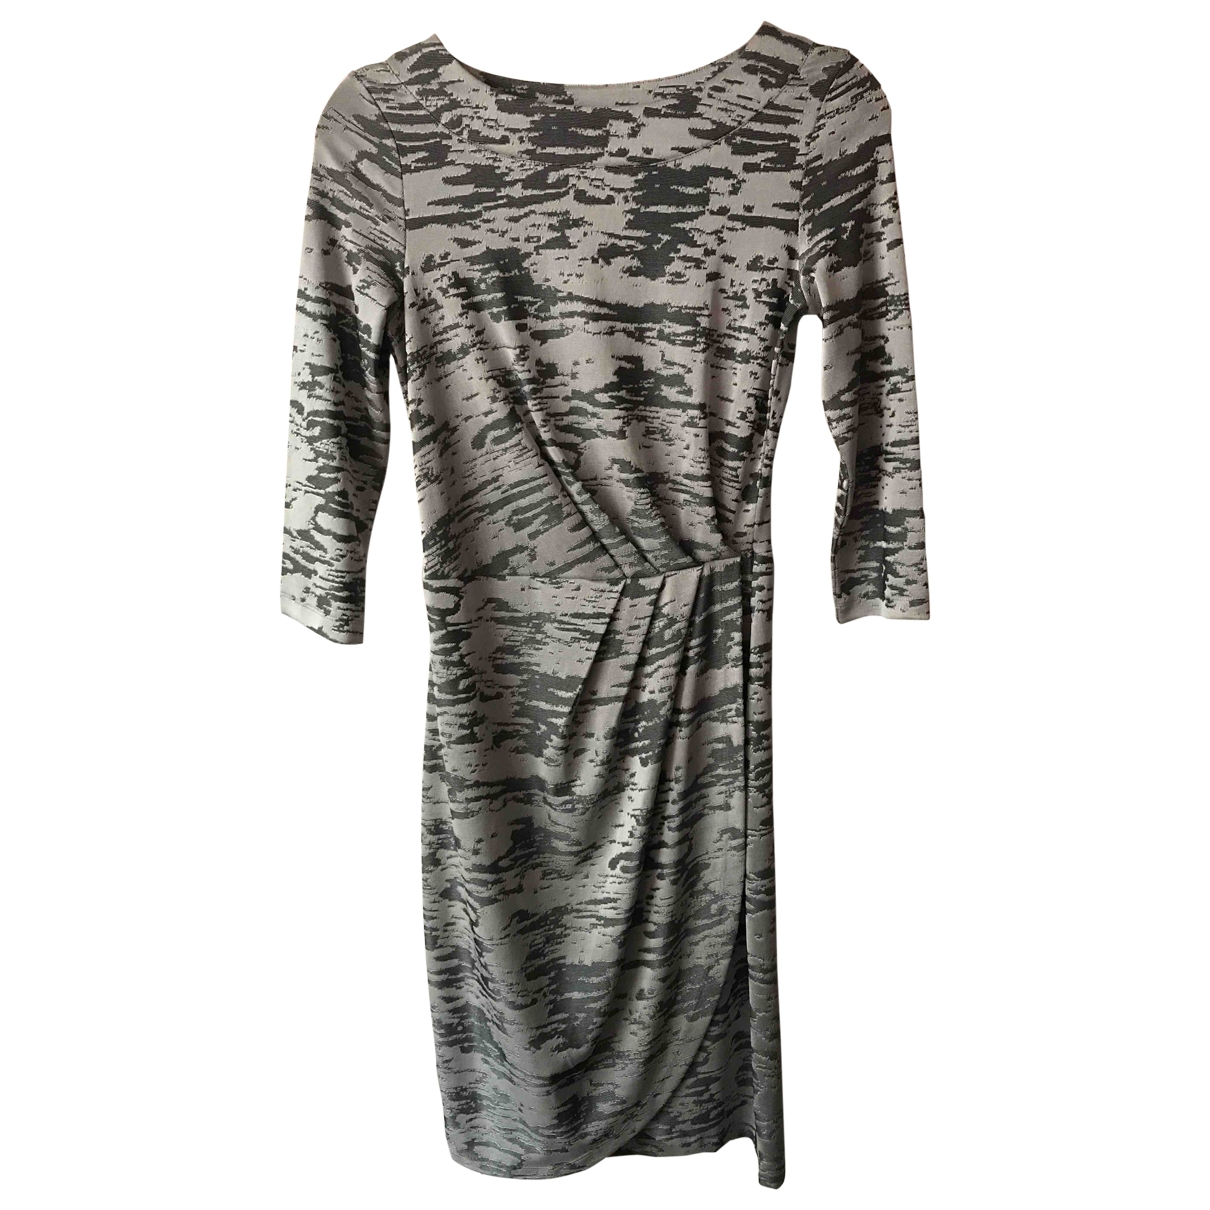 French Connection \N Kleid in  Grau Polyester